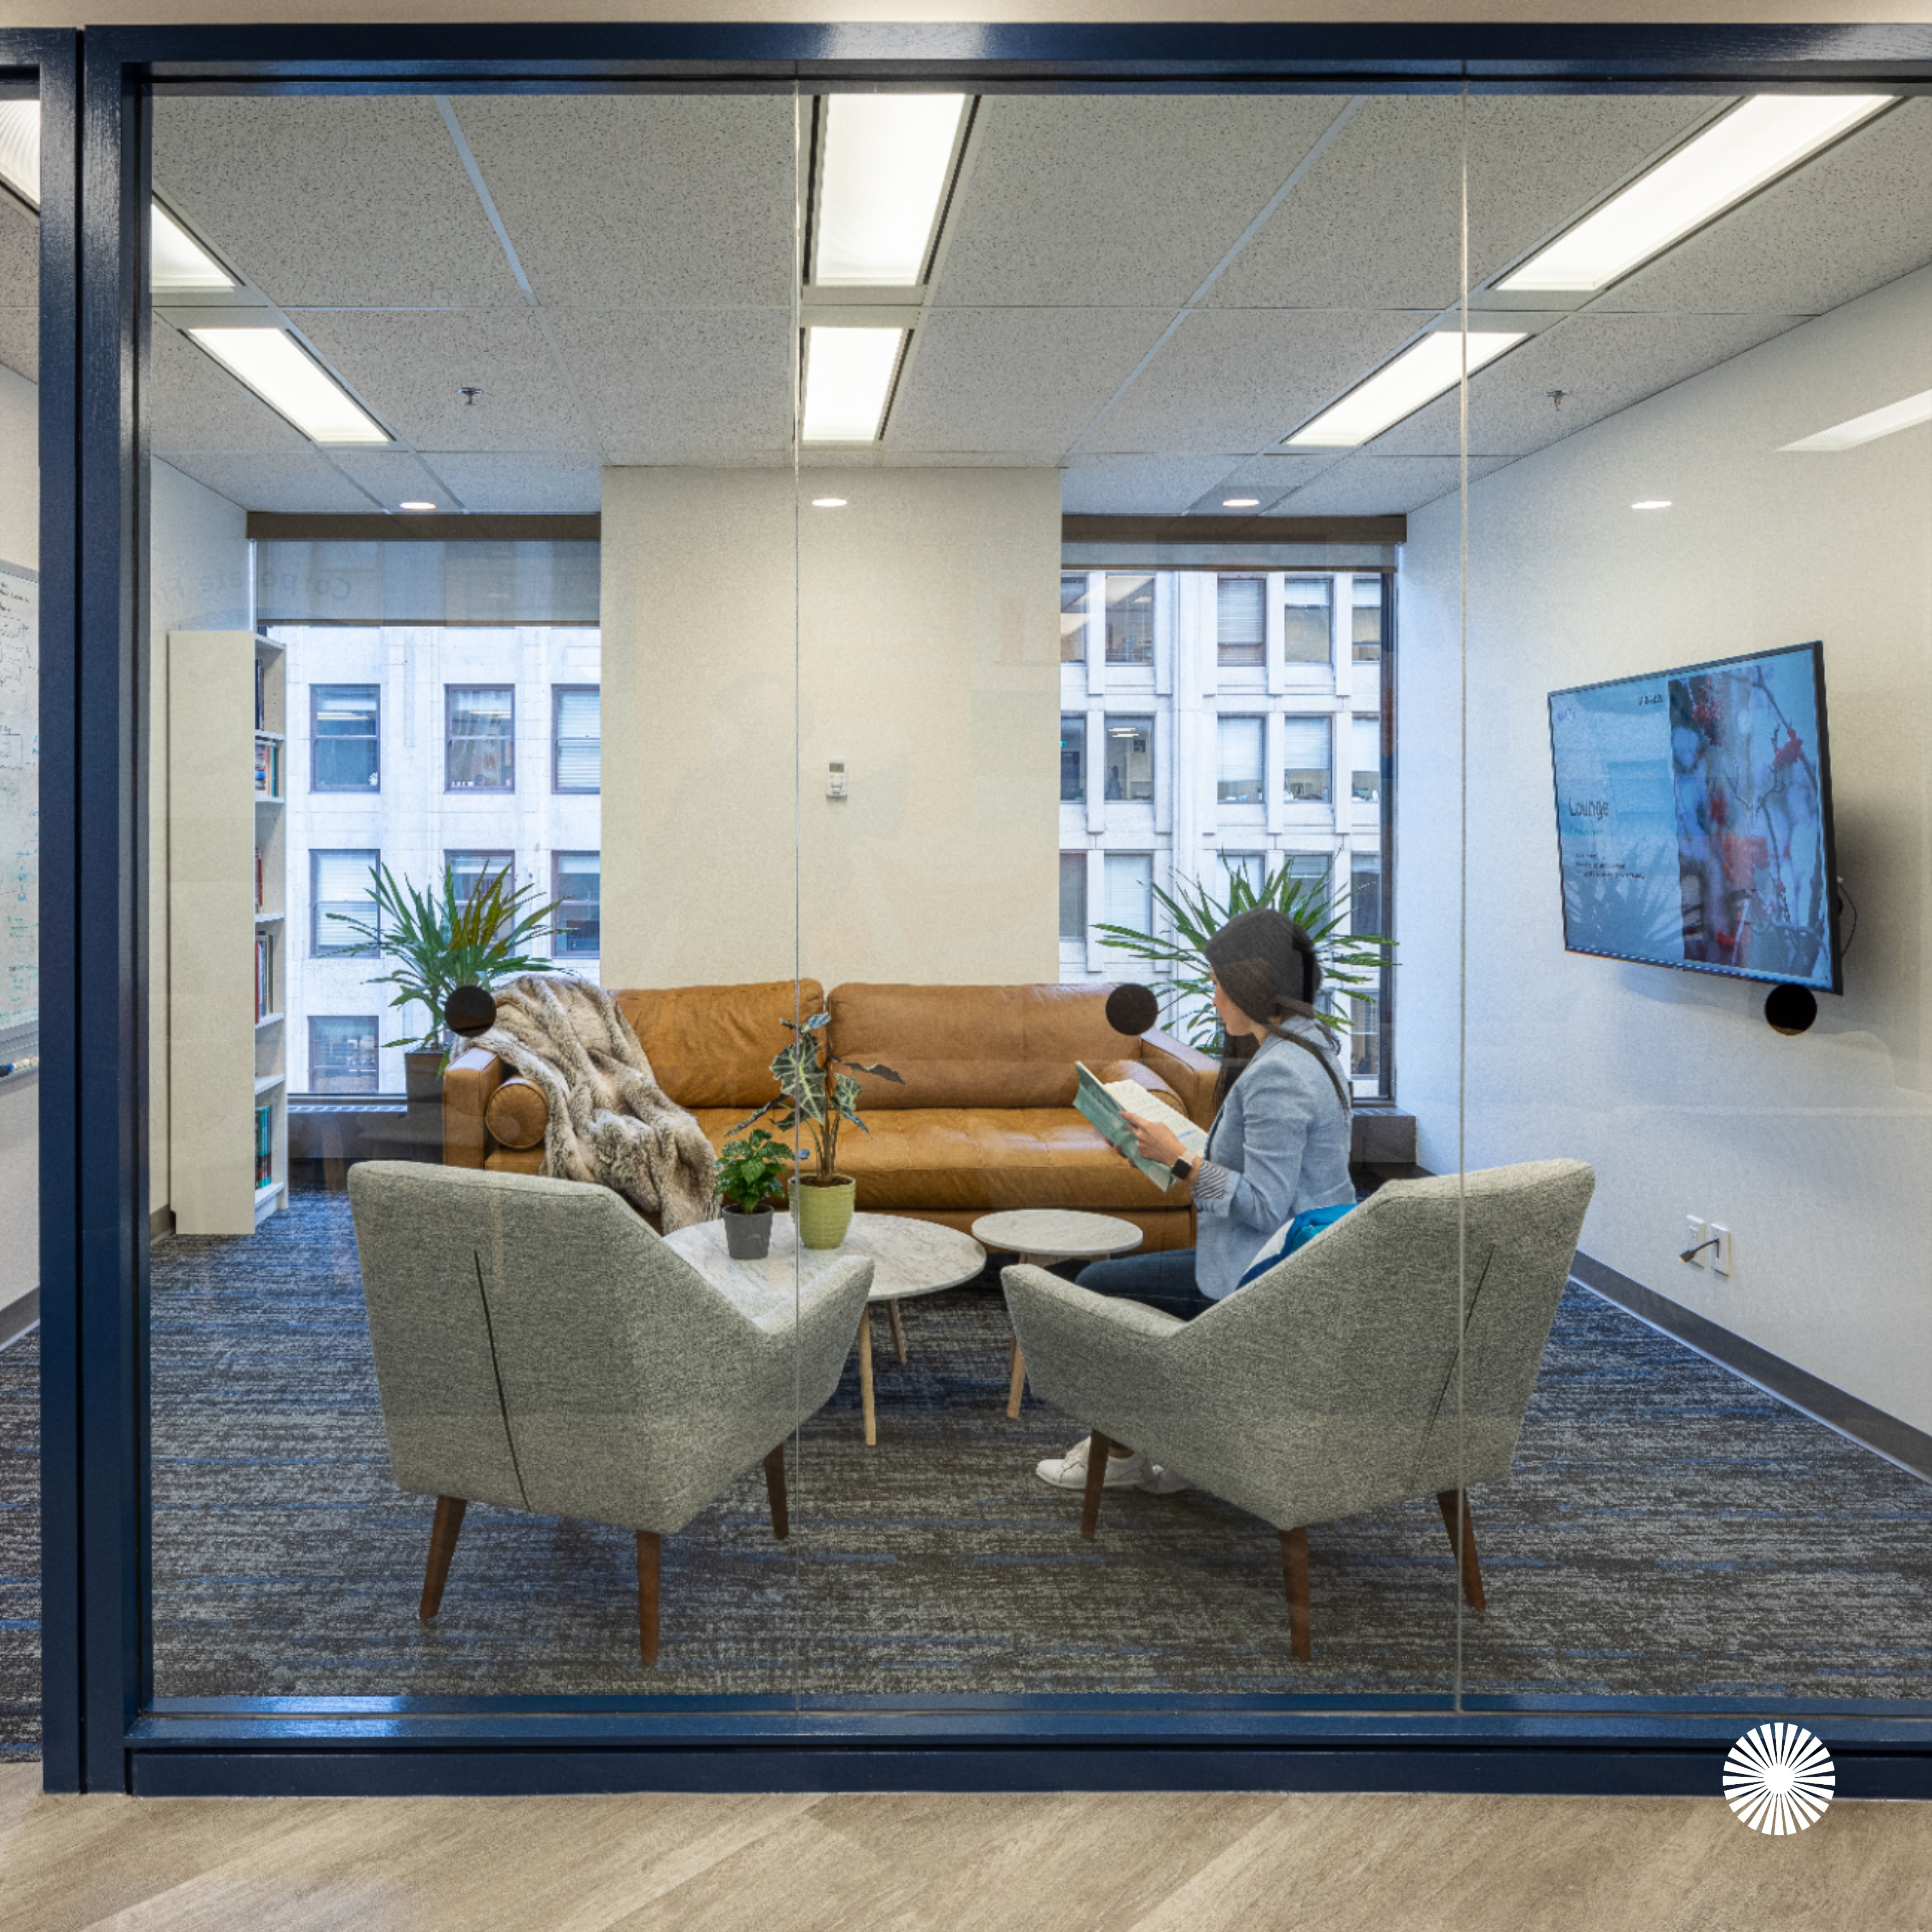 Corporate Finance Institute By Aura Office Environments In 2020 Corporate Office Design Office Design Office Environment